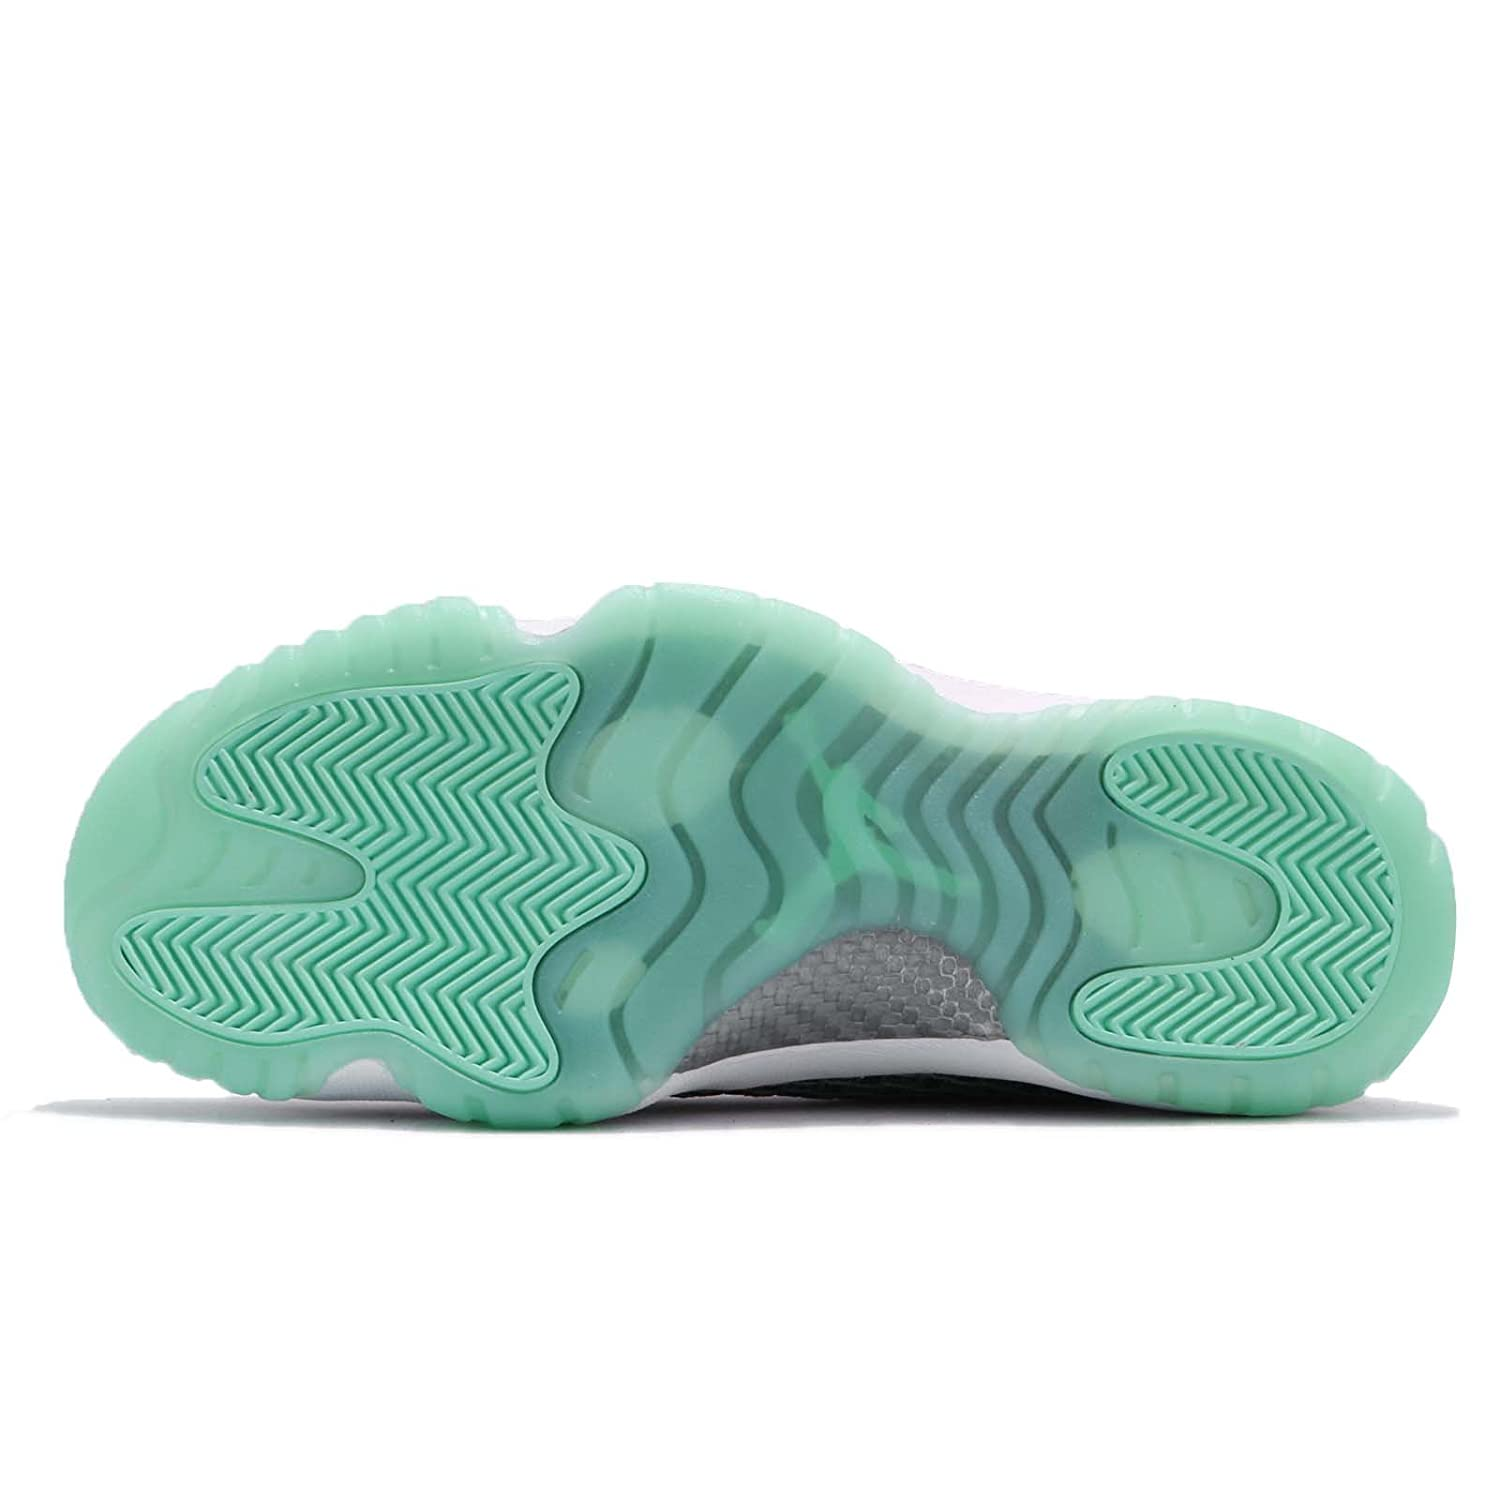 promo code 6b109 0ccea Amazon.com   NIKE Air Jordan Future Low Mens Basketball Trainers 718948  Sneakers Shoes (UK 9.5 US 10.5 EU 44.5, Wolf Grey Emerald Rise 006)    Basketball